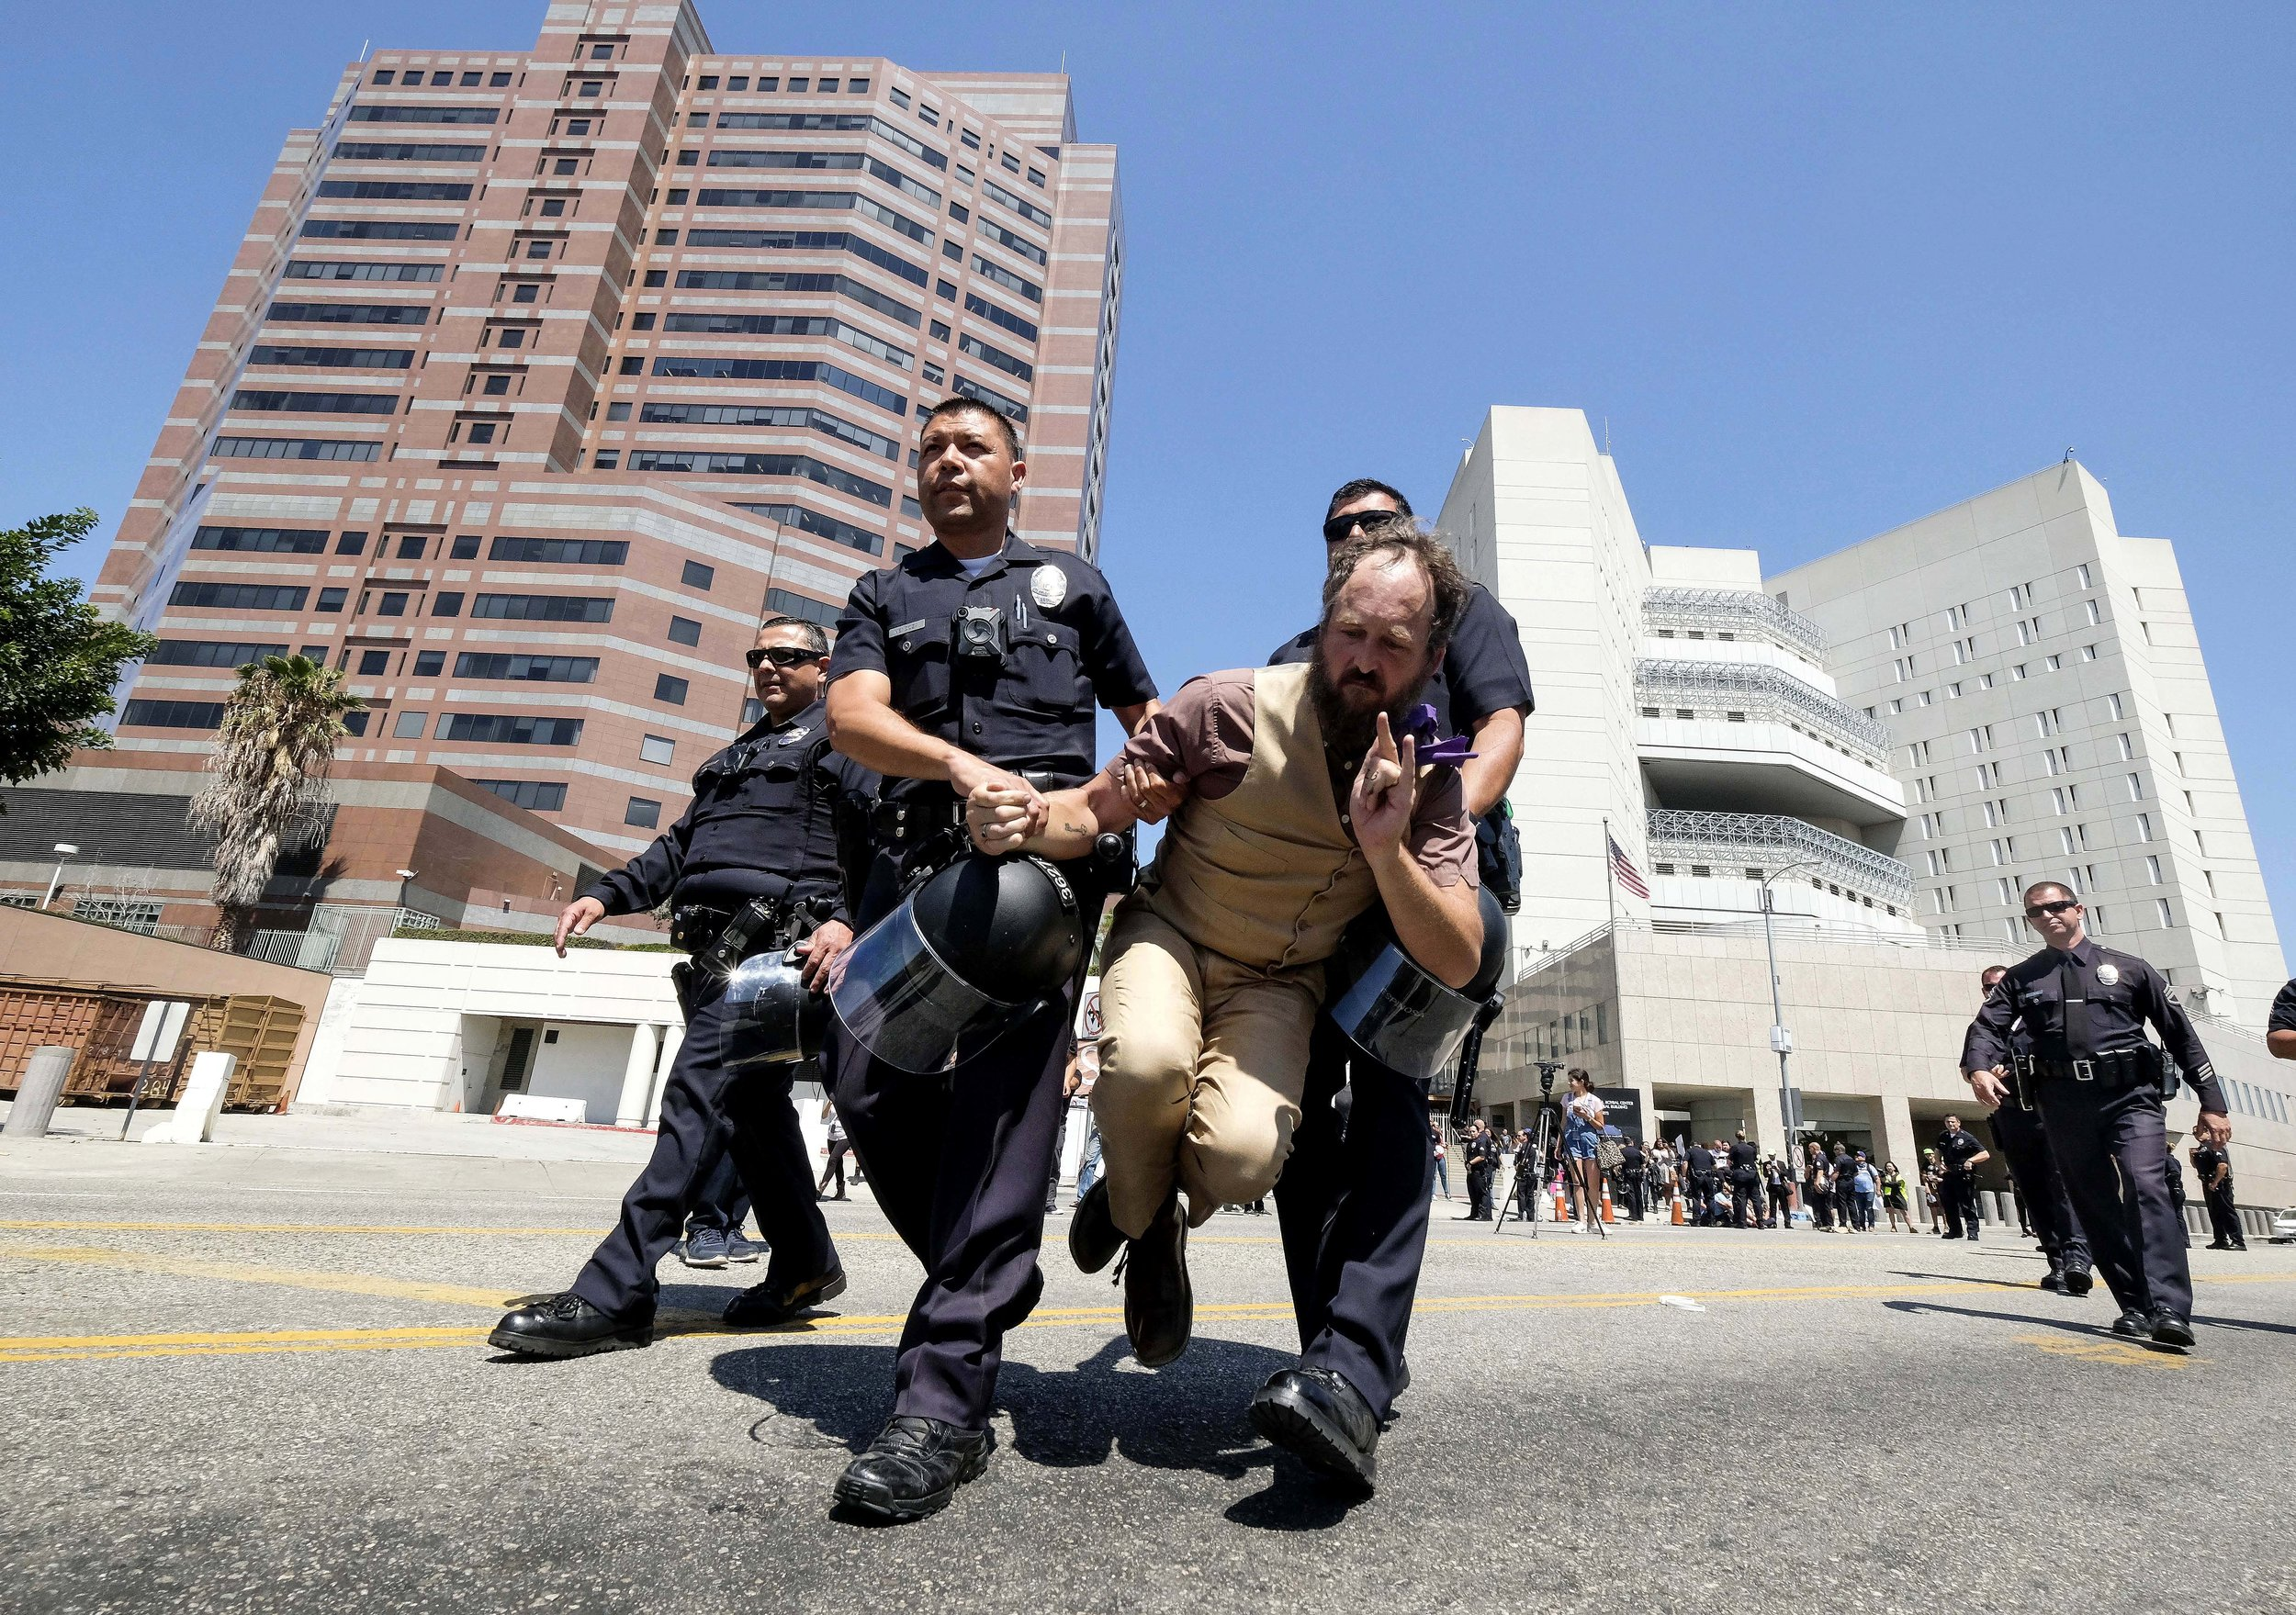 A protester is carried away after being arrested in front of the Immigration and Customs Enforcement facility in downtown Los Angeles on Monday, July 2, 2018. A group of protesters sat down in the street and blocking the entrance to the Immigration and Customs Enforcement headquarters as part of a nationwide call to end Immigration and Customs Enforcement's separation of families.